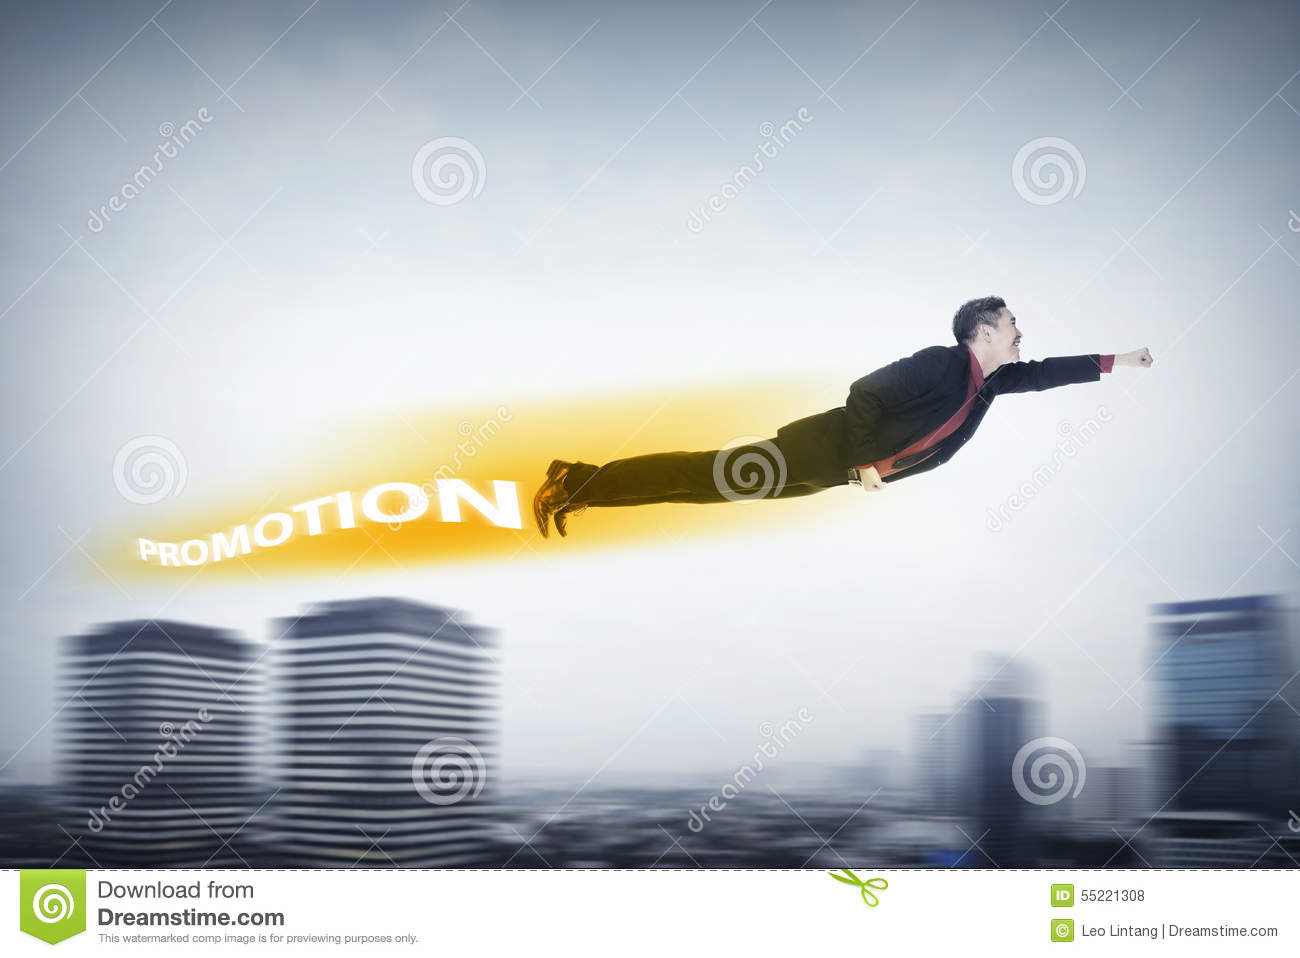 Business man flying with promotion shadow behind him